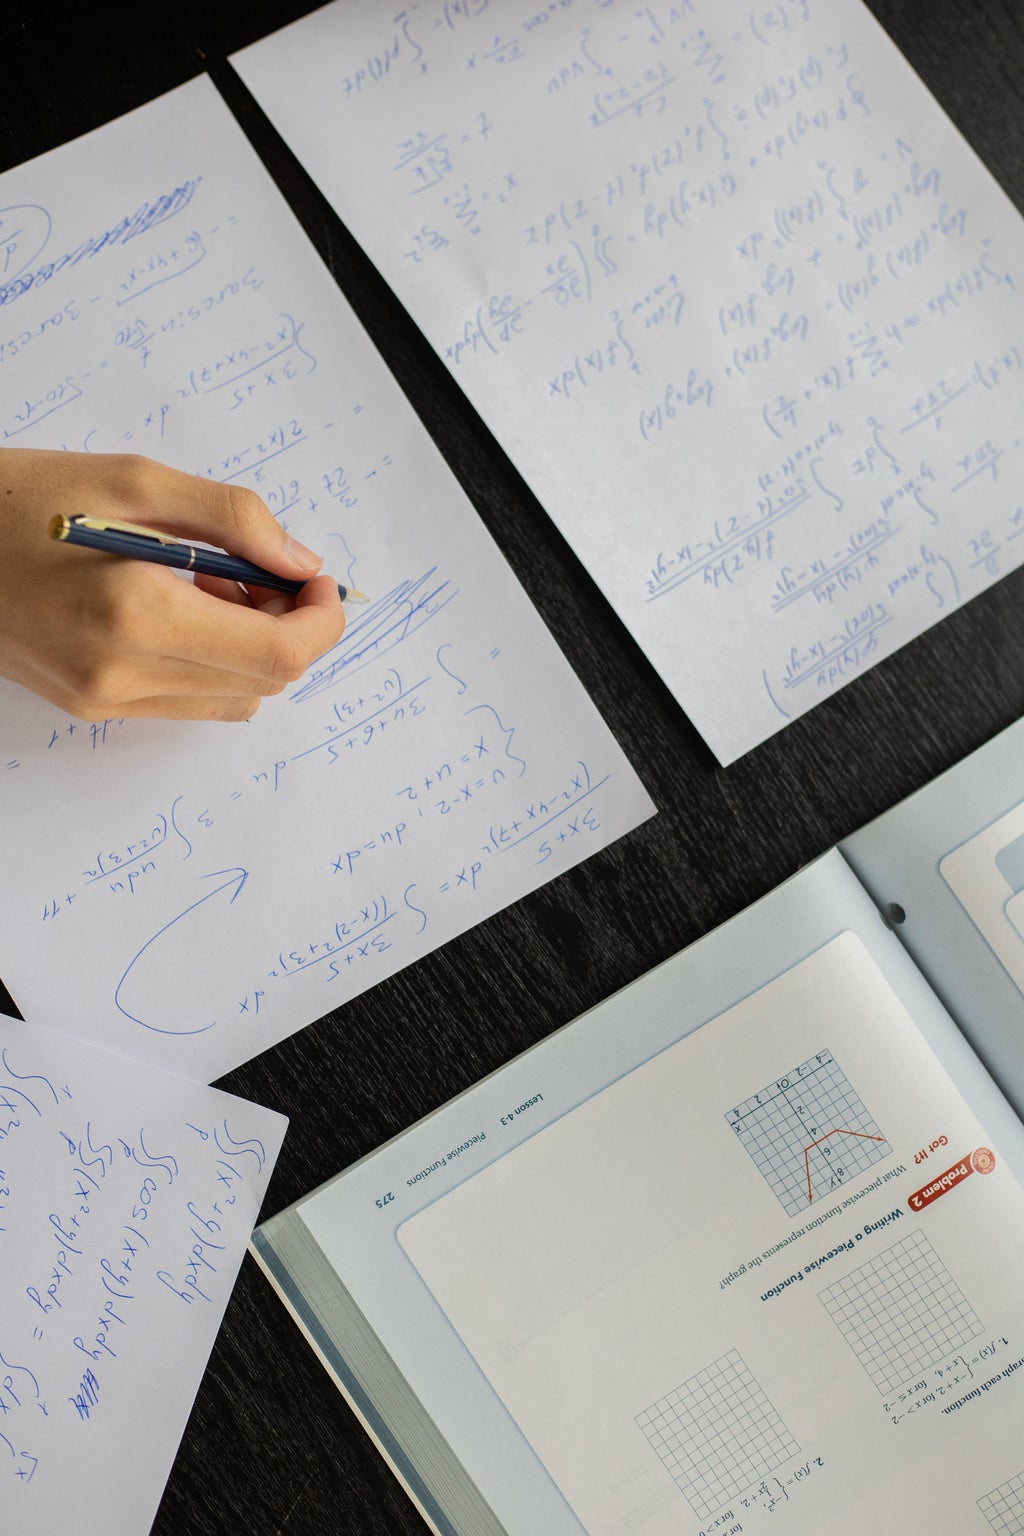 person writing notes while reading a textbook